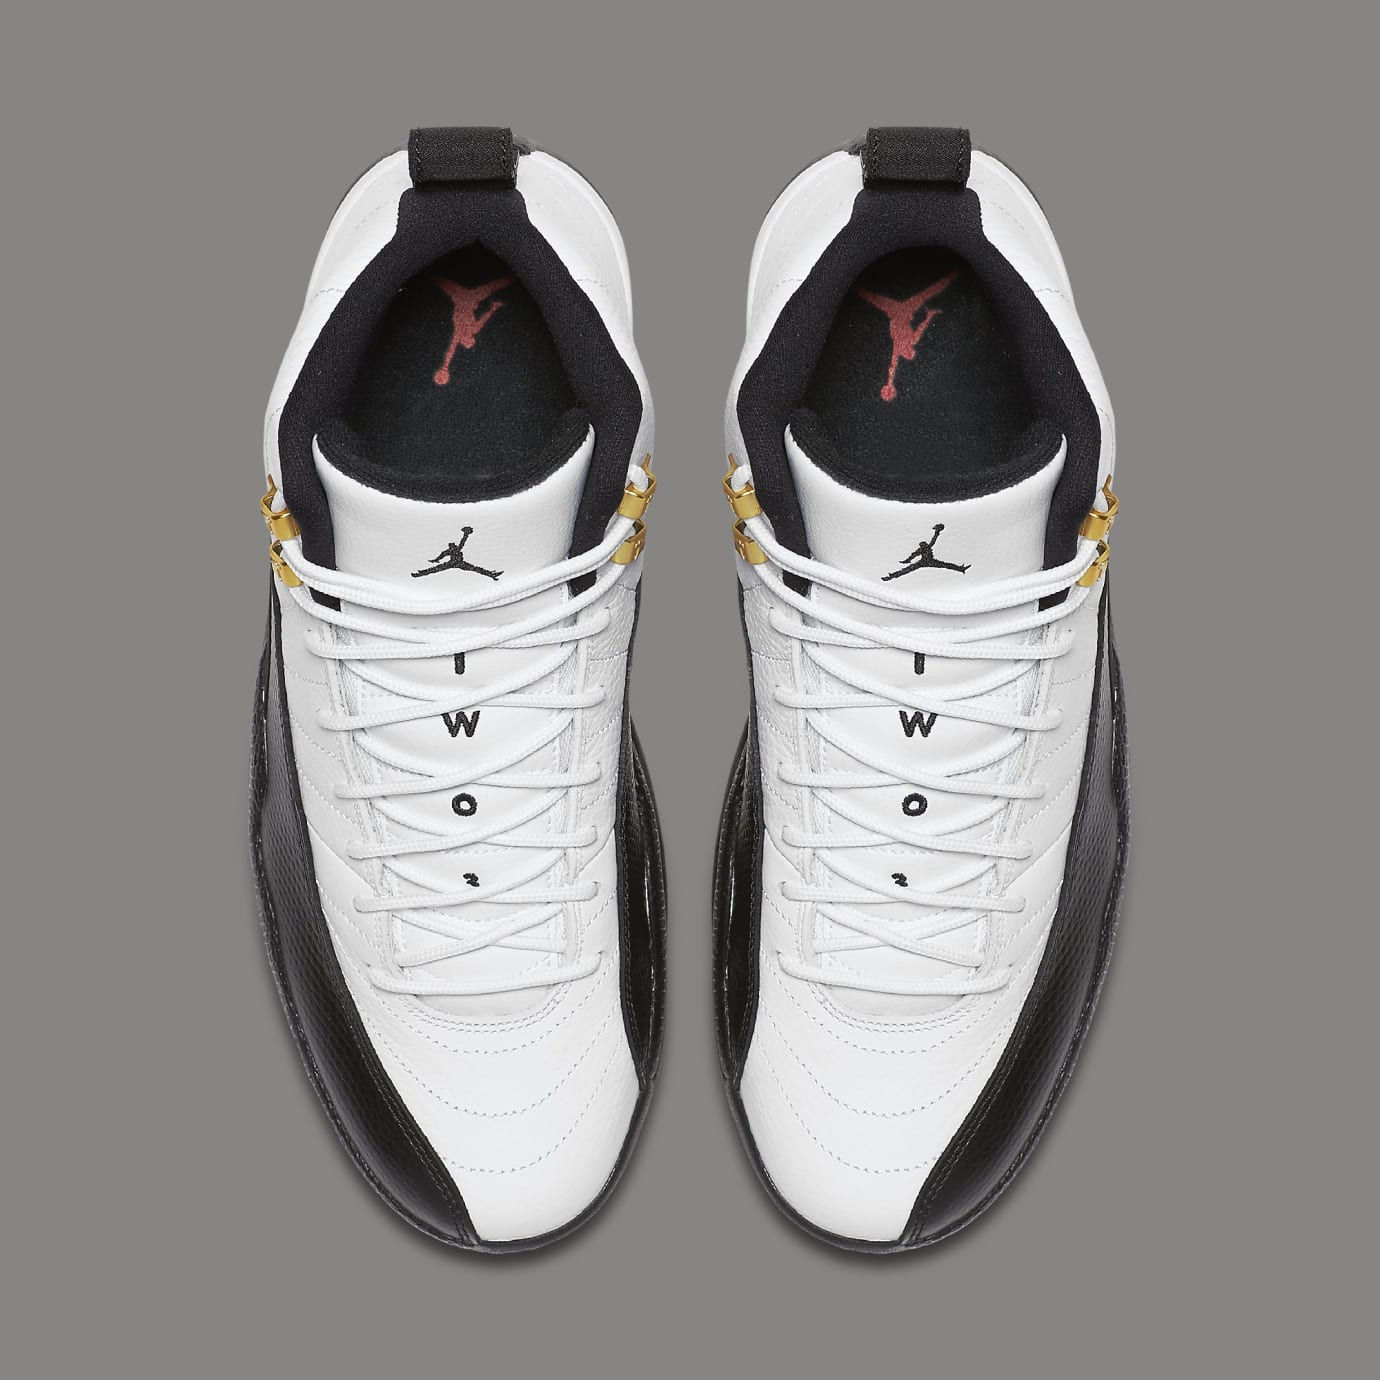 finest selection d83fe cc9e2 Image via Nike Air Jordan 12  Taxi  130690-125 (Top)